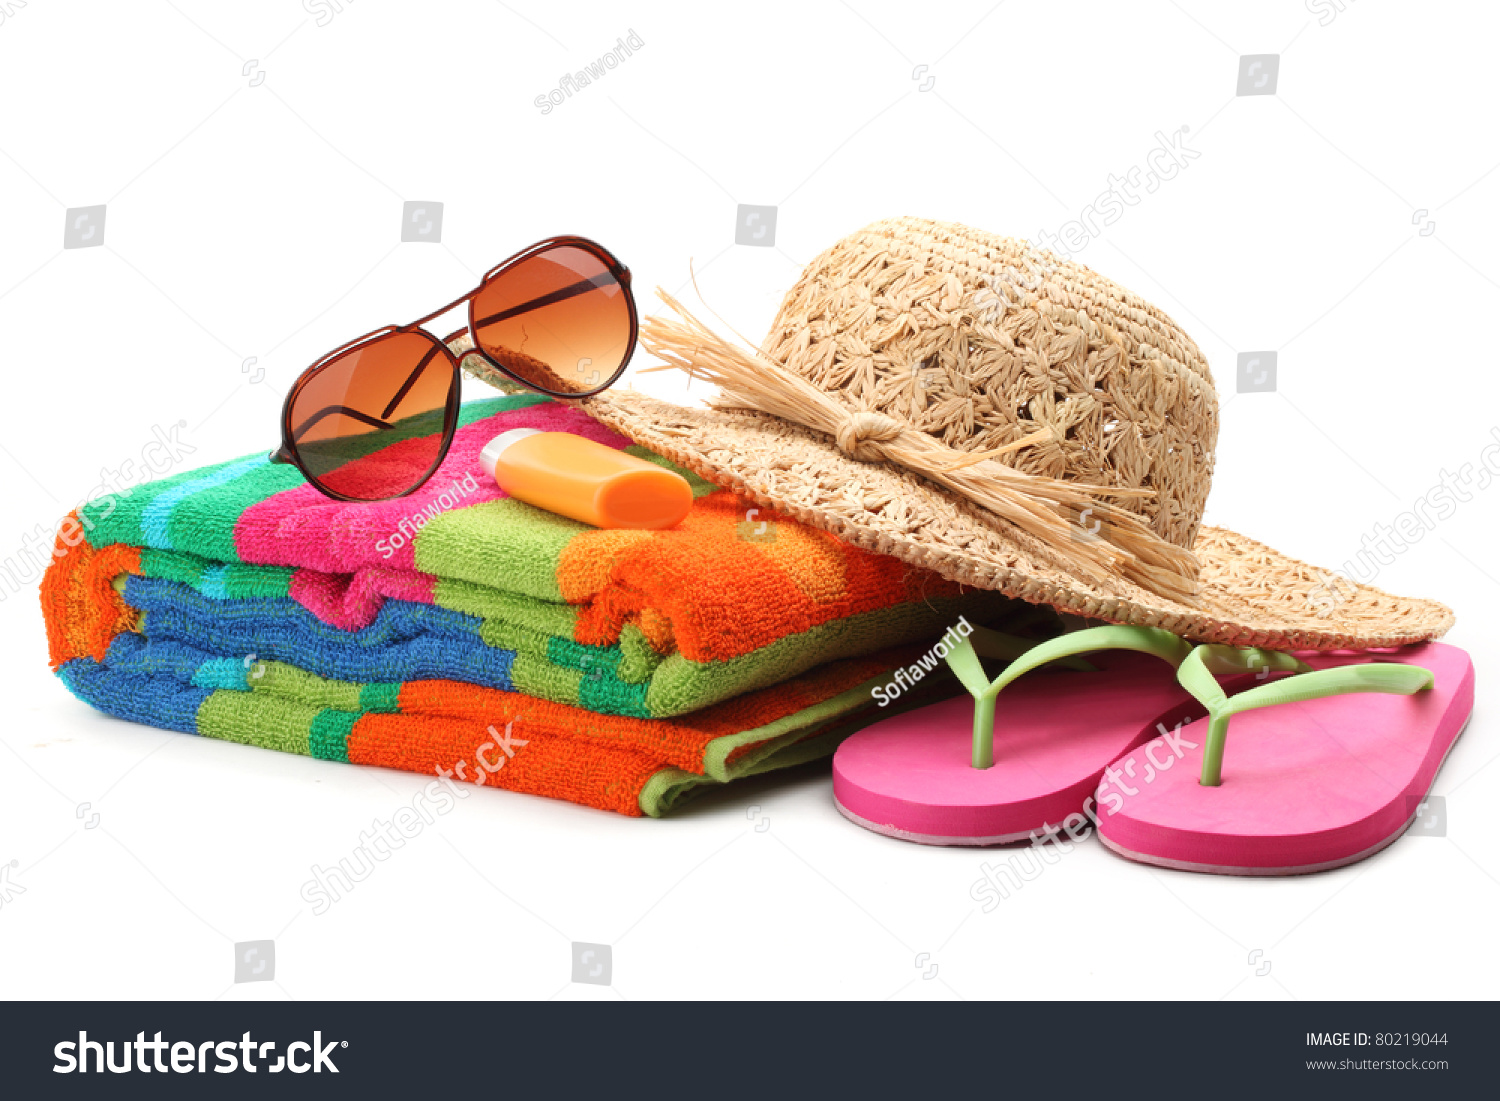 beach items straw hattowelflip flops sunglassesisolated. Black Bedroom Furniture Sets. Home Design Ideas